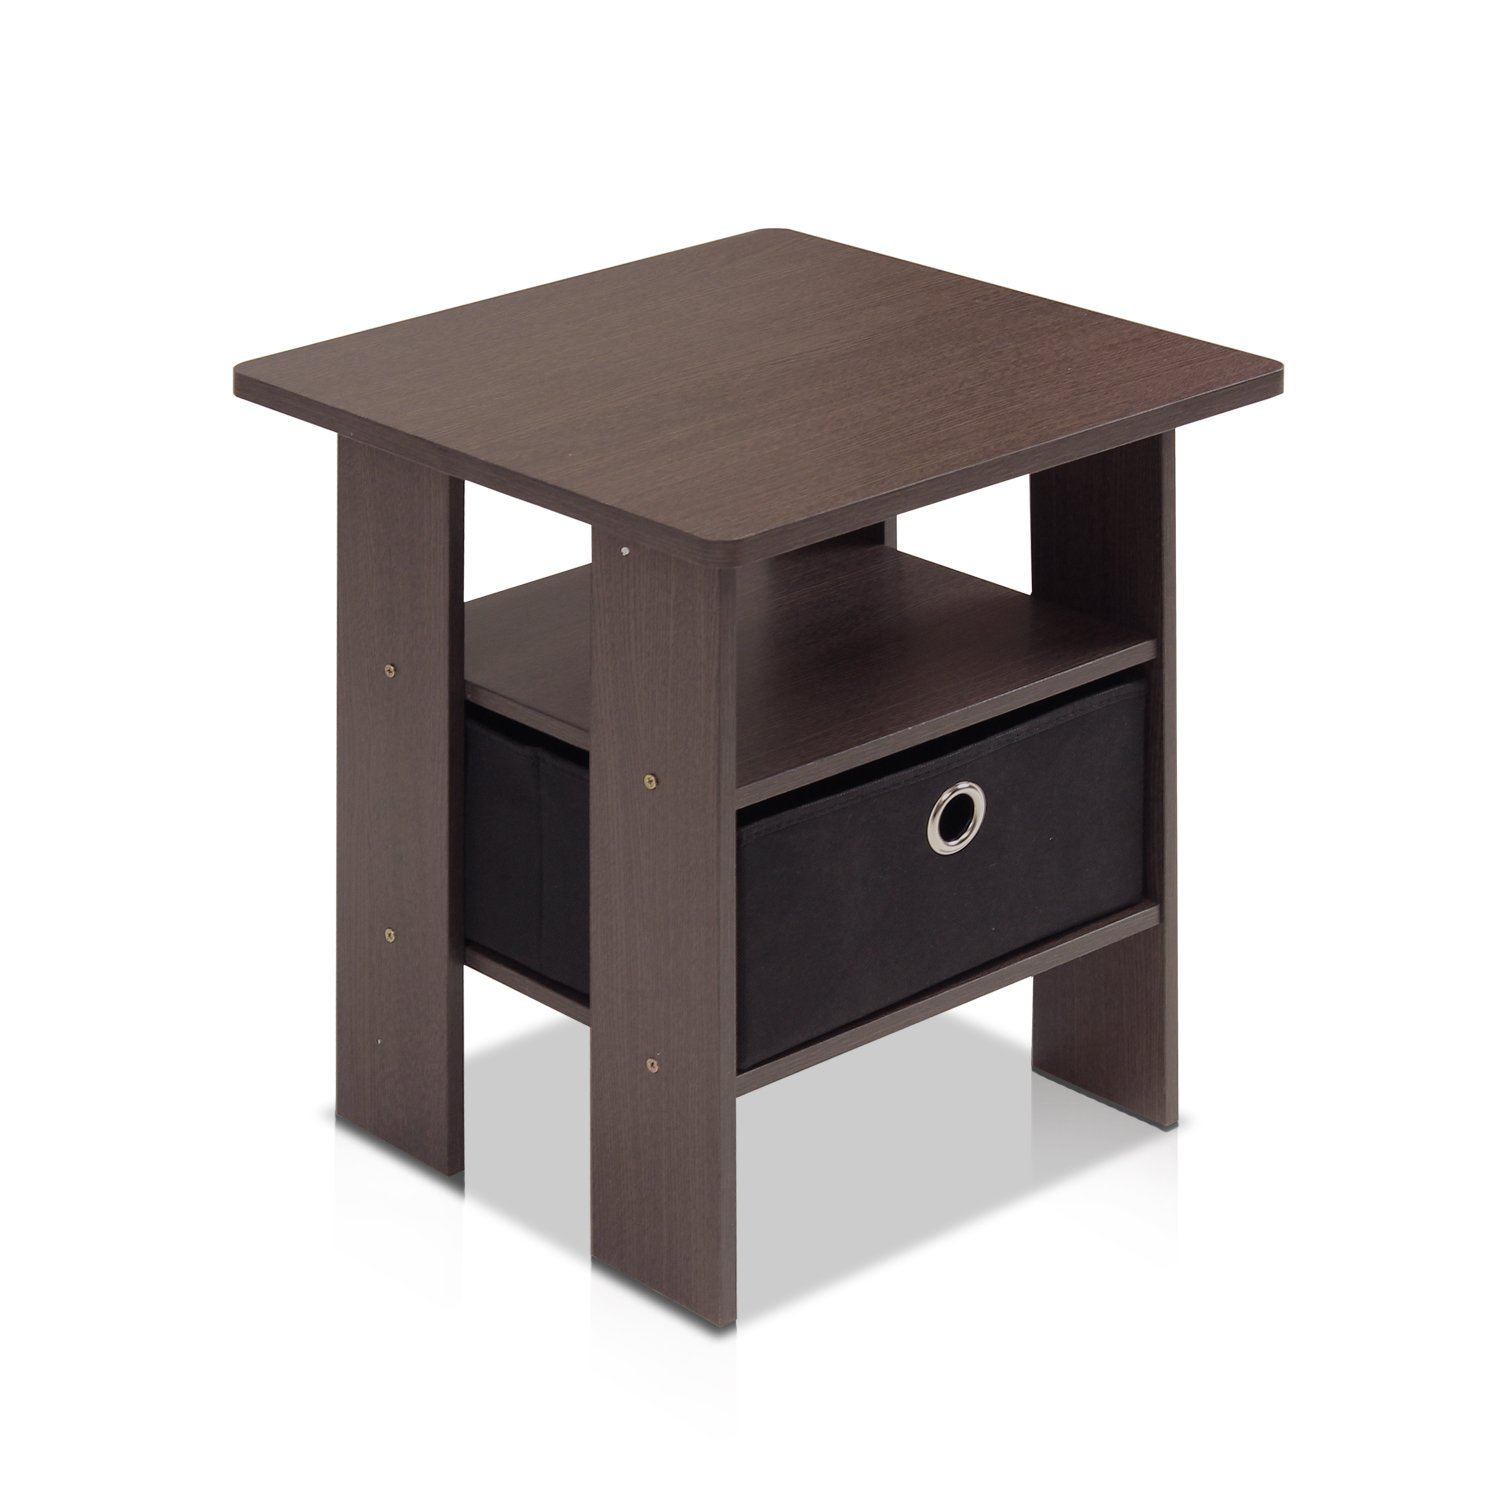 Furinno 11157 End Table Bedroom Night Stand with Bin Drawer 11157DBR/BK